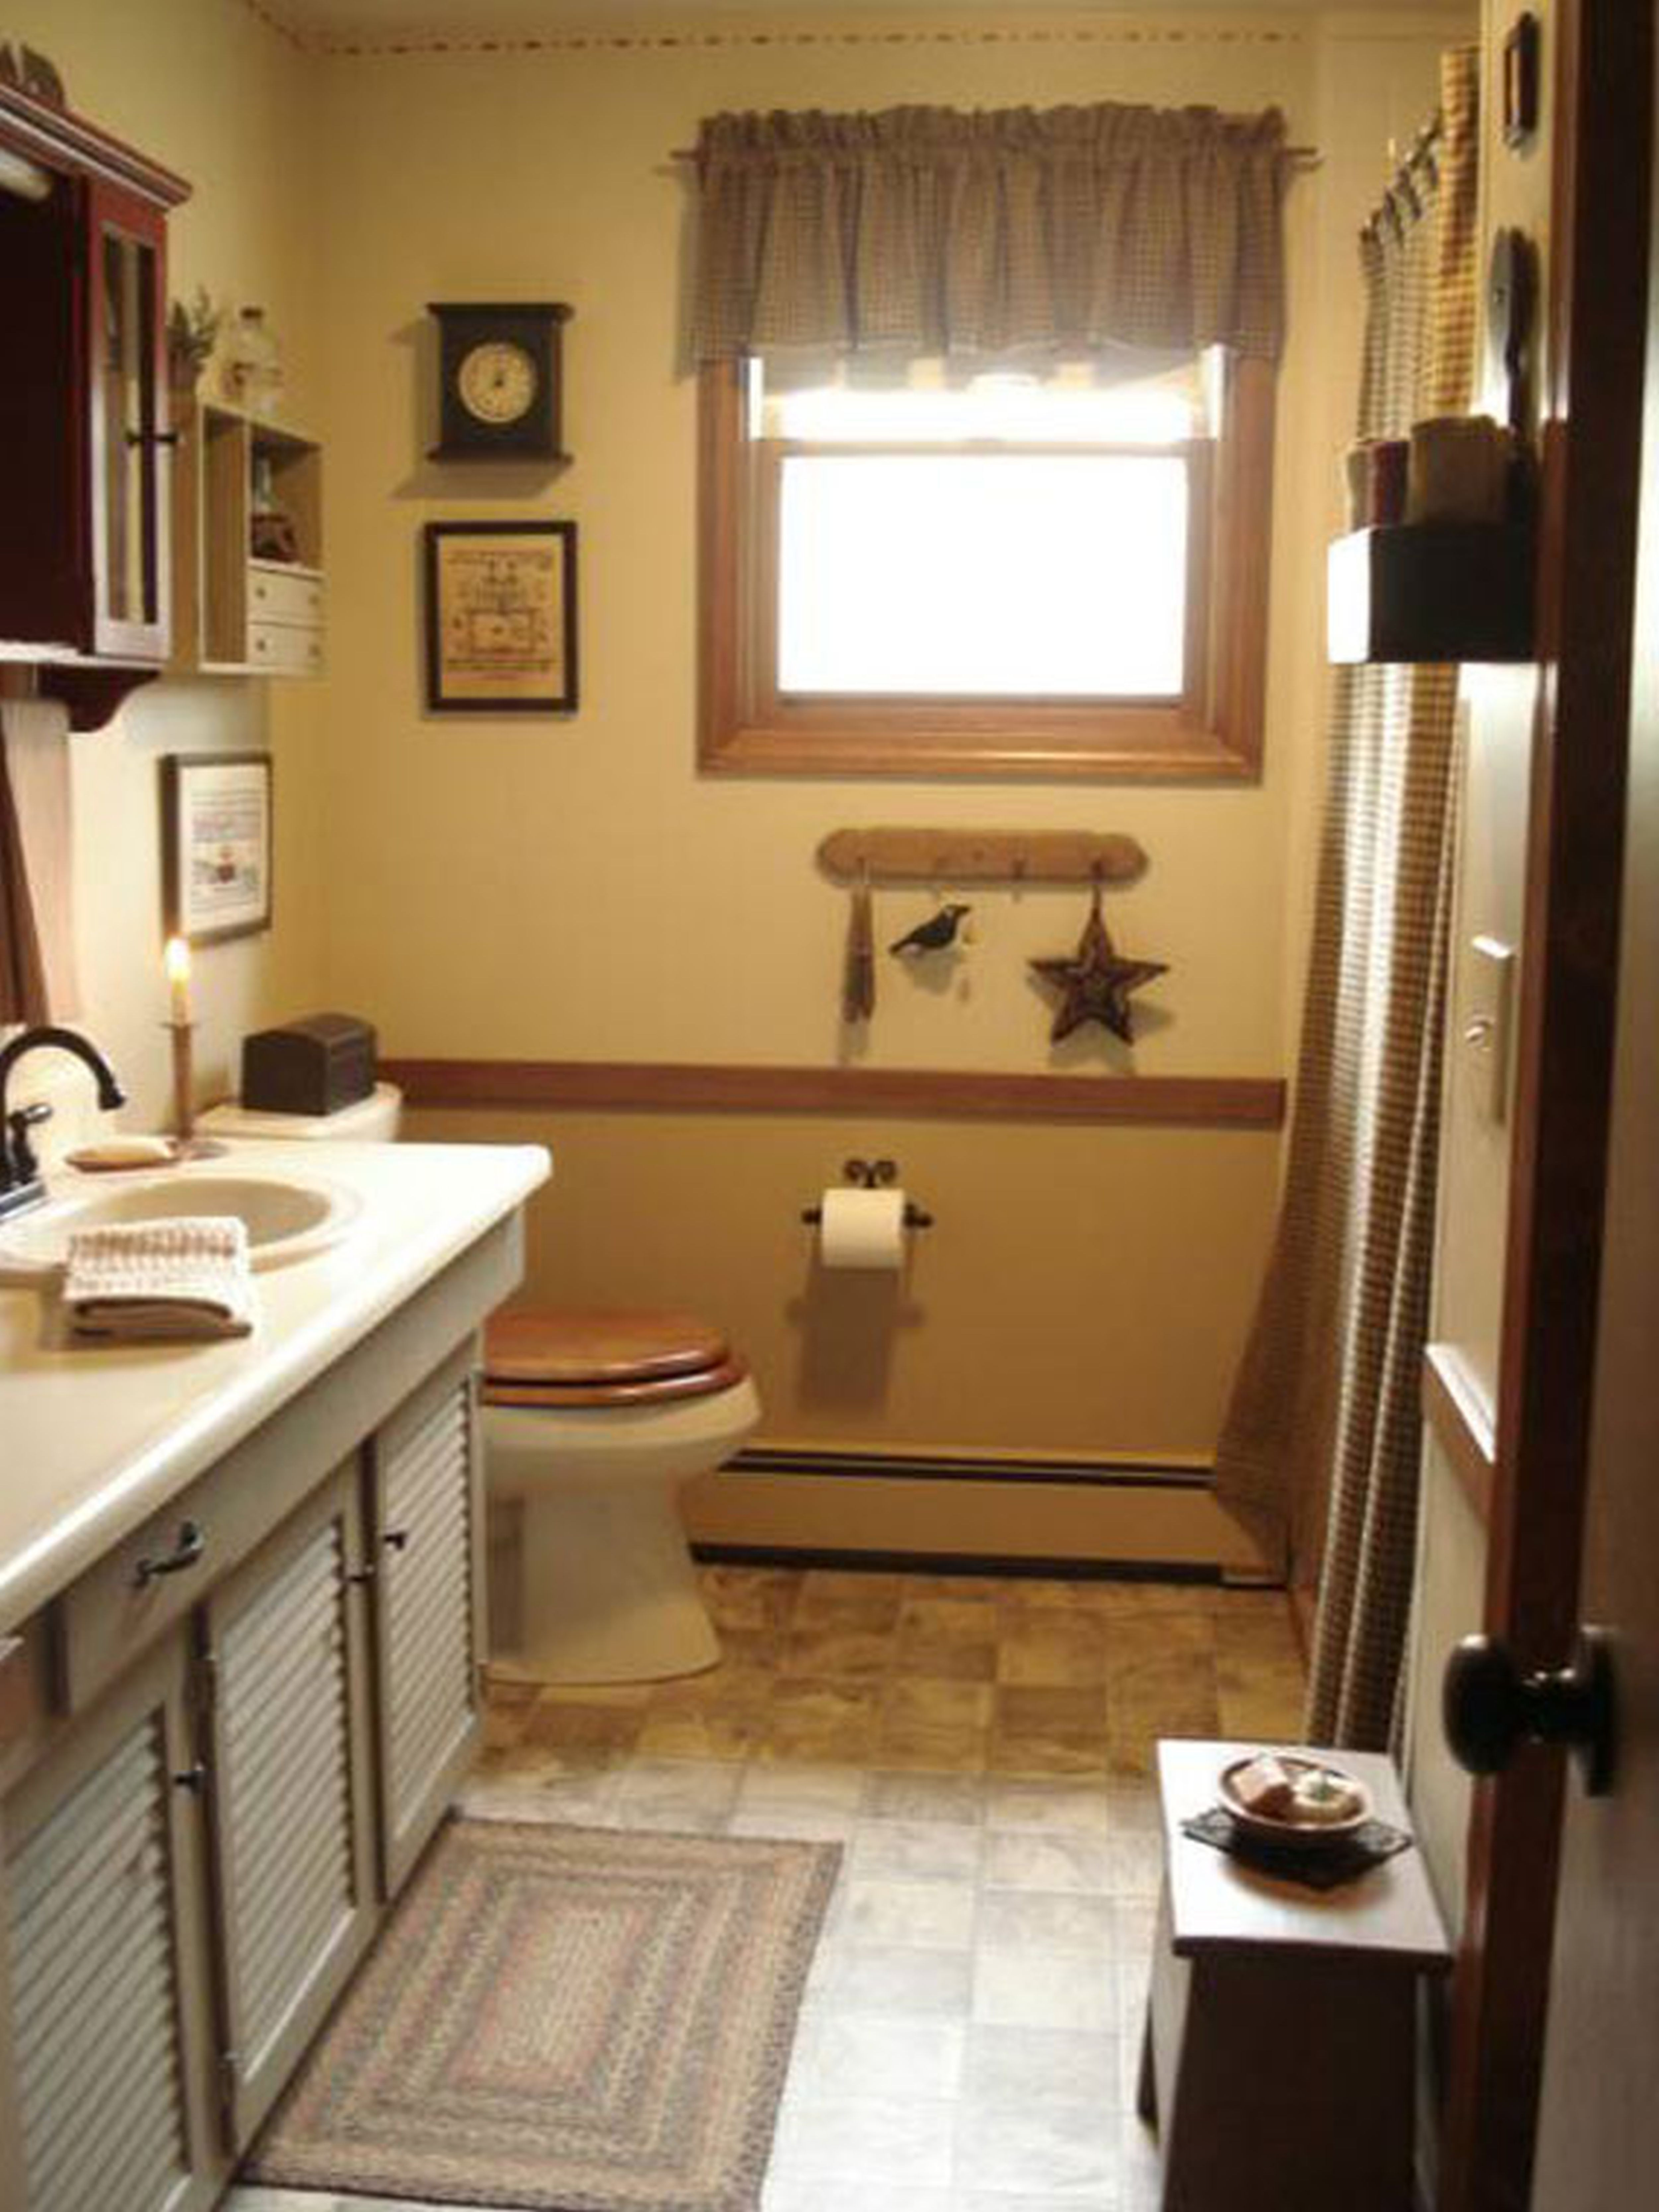 Vintage Bathroom Decor Often Used As One Of The Most Popular Way To Make Your Bathroom Looking Nicer And A Lot More Appealing To The Eyes